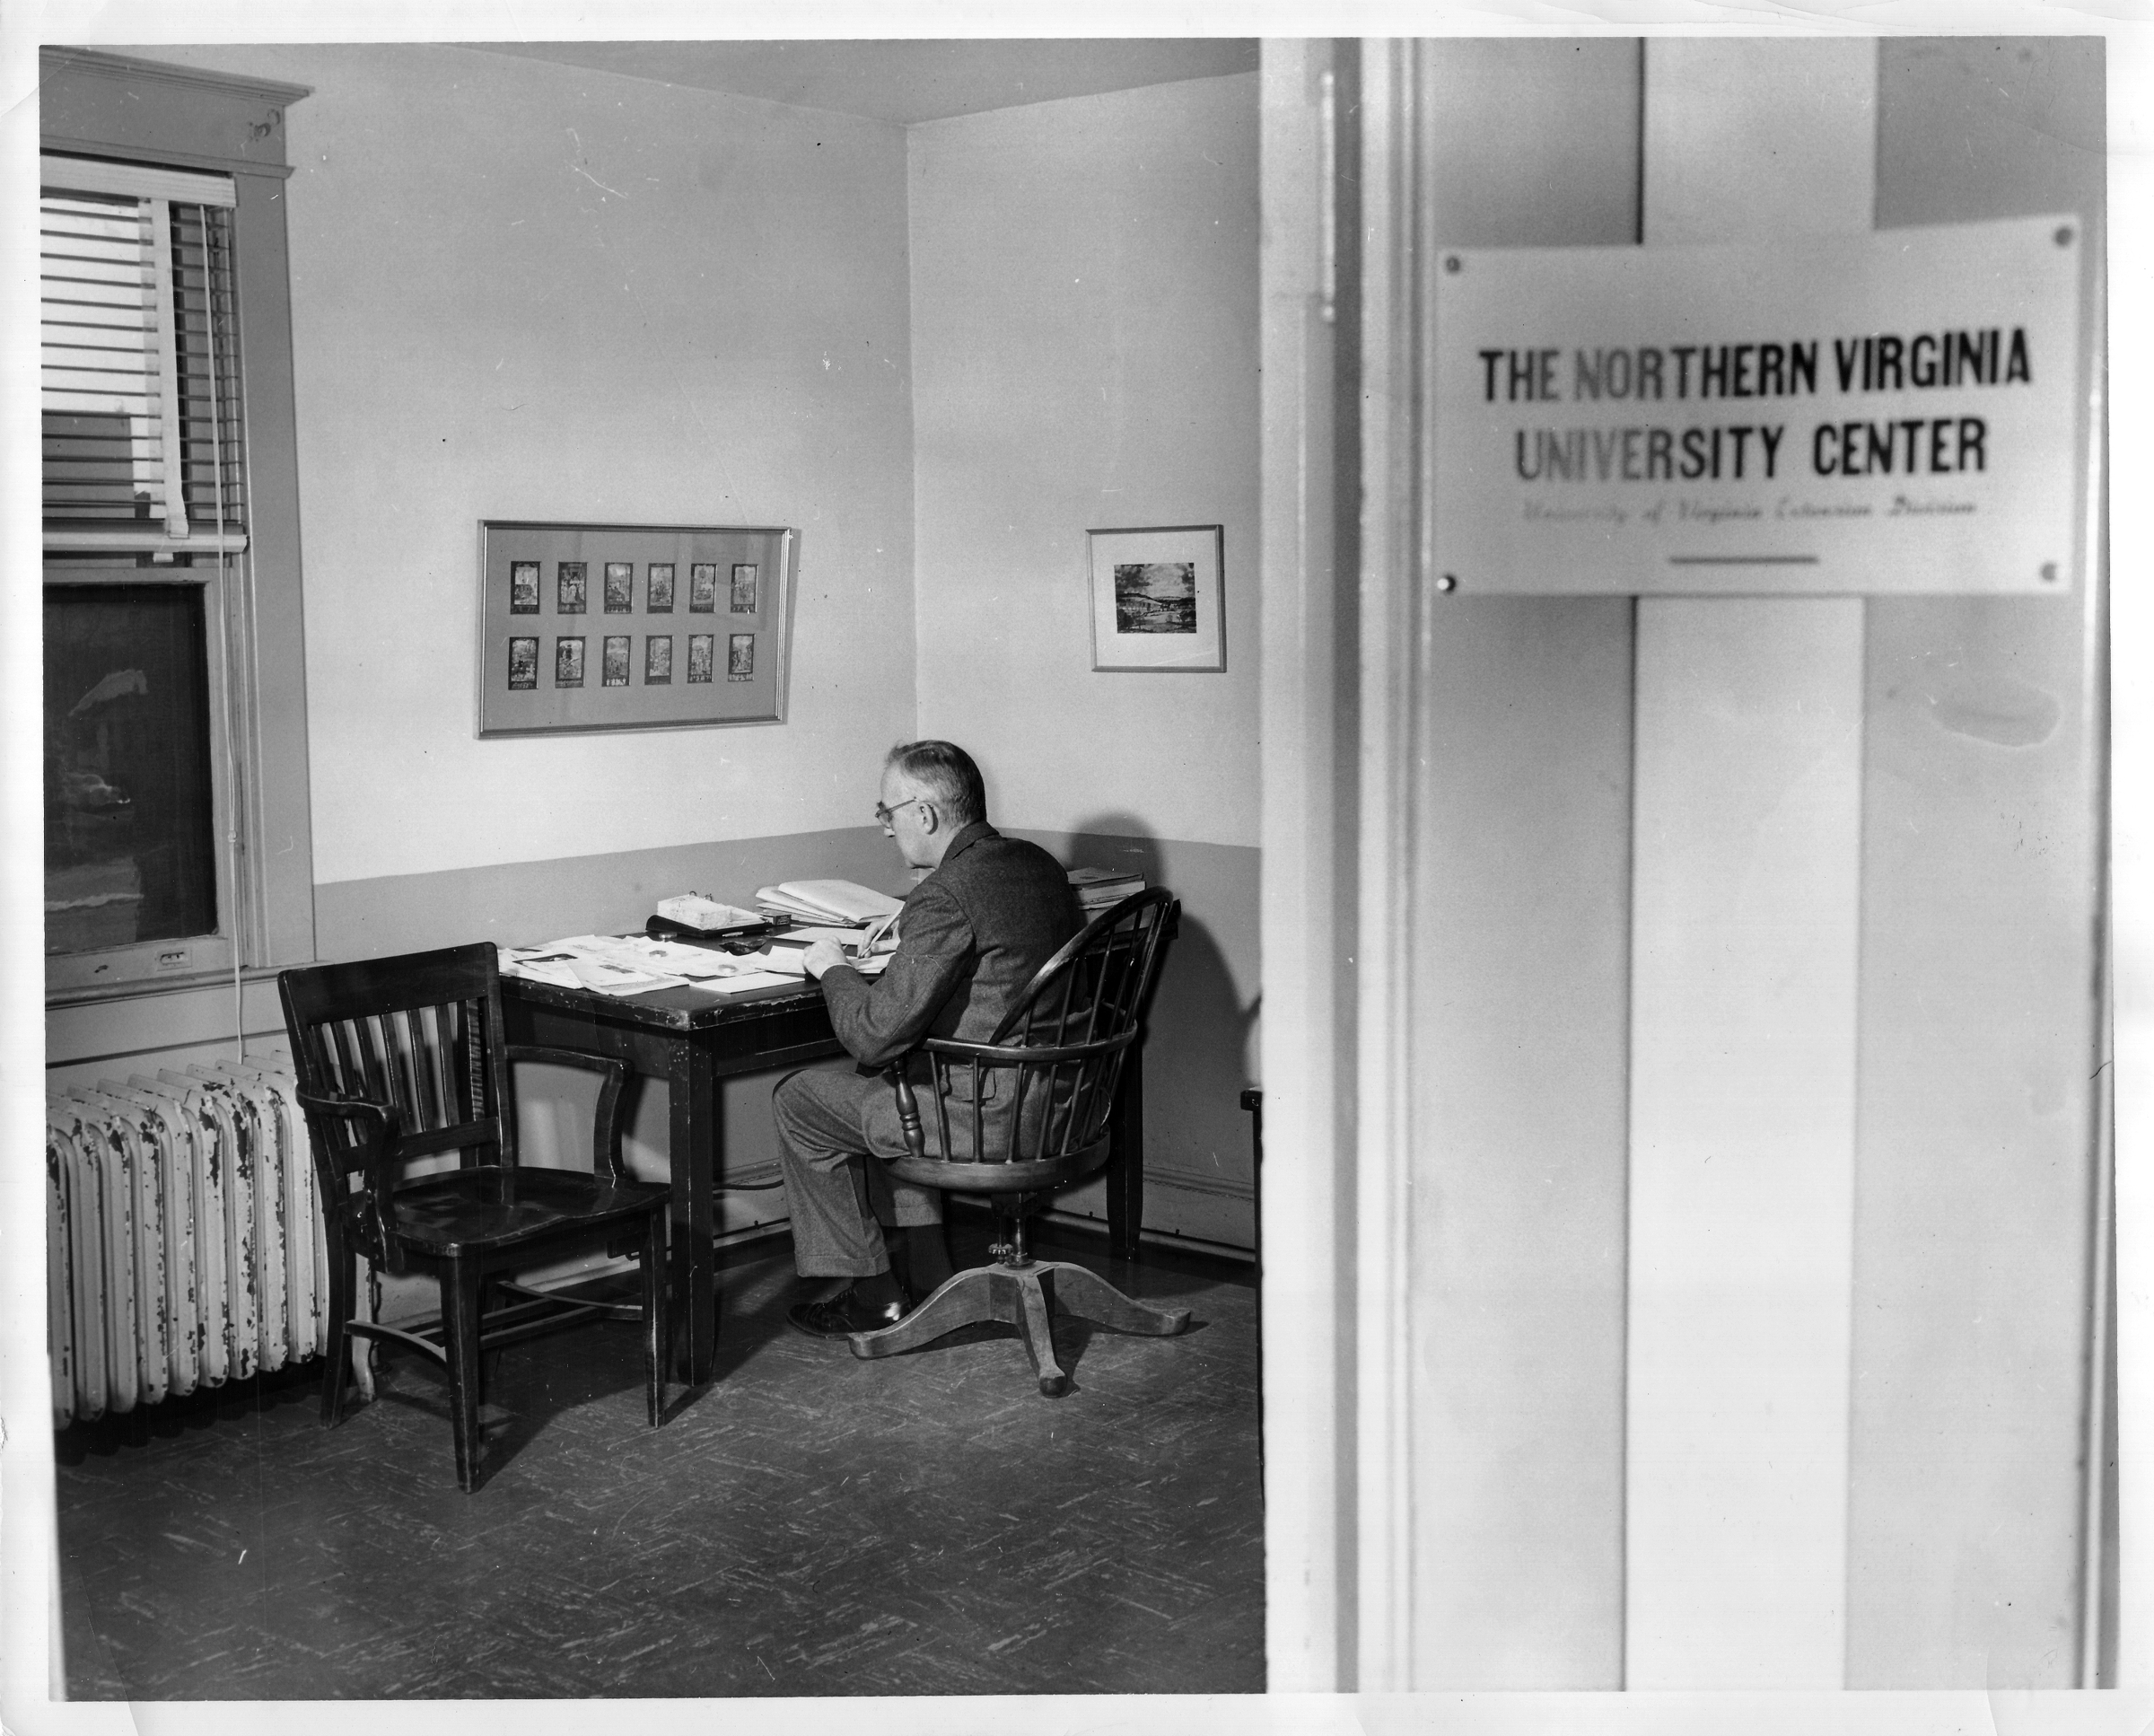 John Norville Gibson Finley at his desk, Northern Virginia University Center, December 22, 1953.